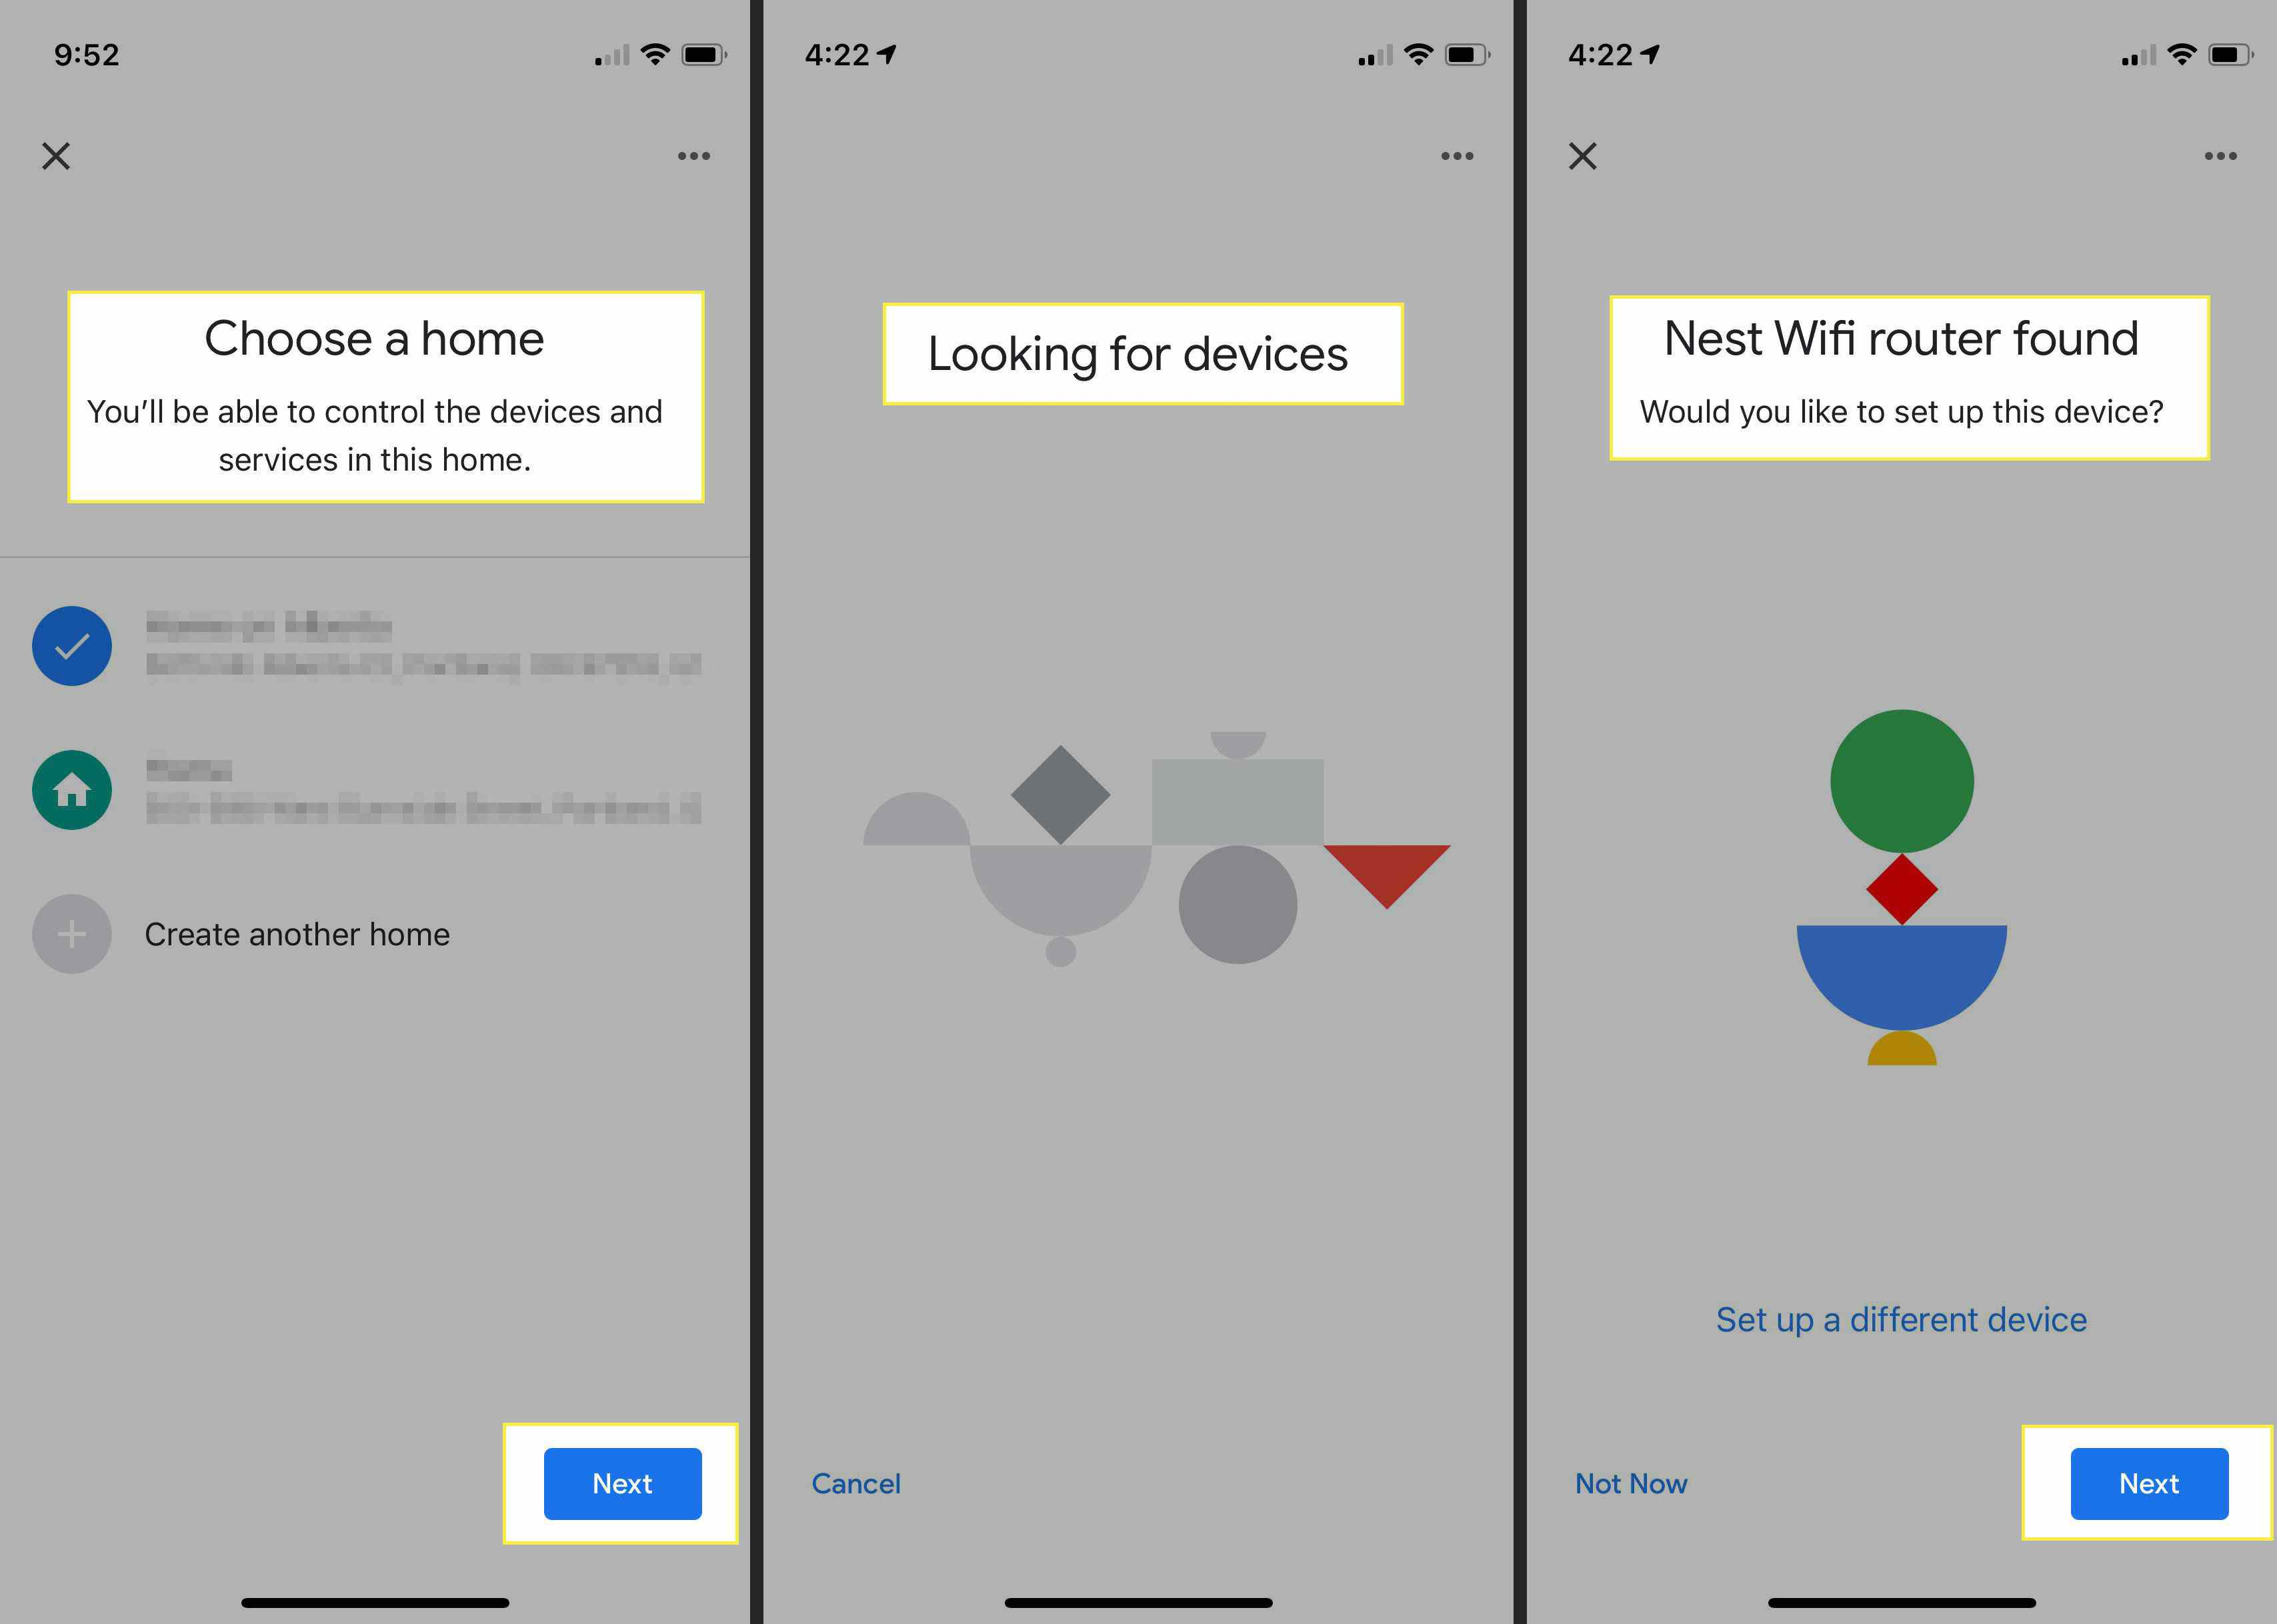 Adding a Nest router to your network on an iPhone in Google Home app